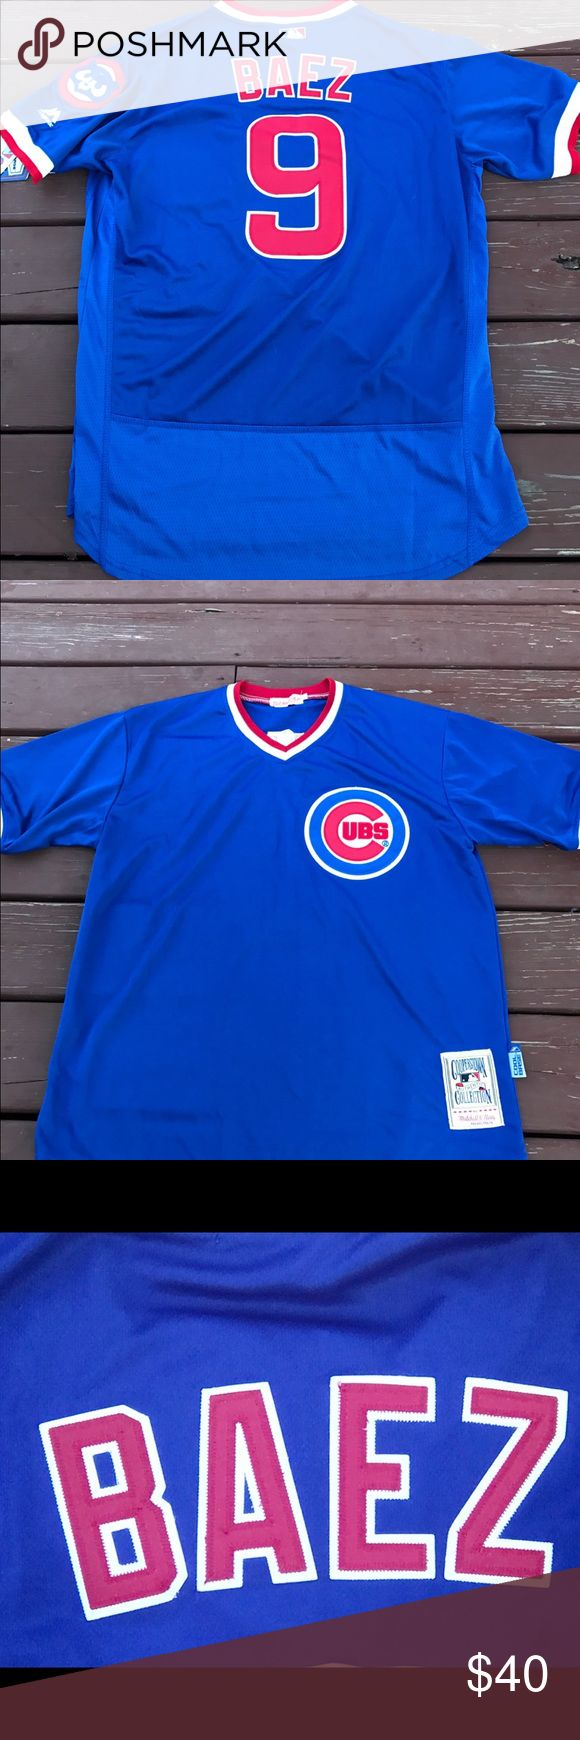 Men's Javier Baez Cubs 1984 Throwback Jersey (XXL) Men's Chicago Cubs Javier Baez 1984 Mitchell & Ness Throwback Jersey. Brand new with tags, size XXL Flex base On Field jersey. I have a few more of these available in different sizes, please check my listings for more. I recently closed my retail store and am liquidating all my inventory. Over 300 jerseys available for Men, Women and kids. Need a Cubs W flag? How about Cubs World Series patches? Got em! If you don't see what your looking…